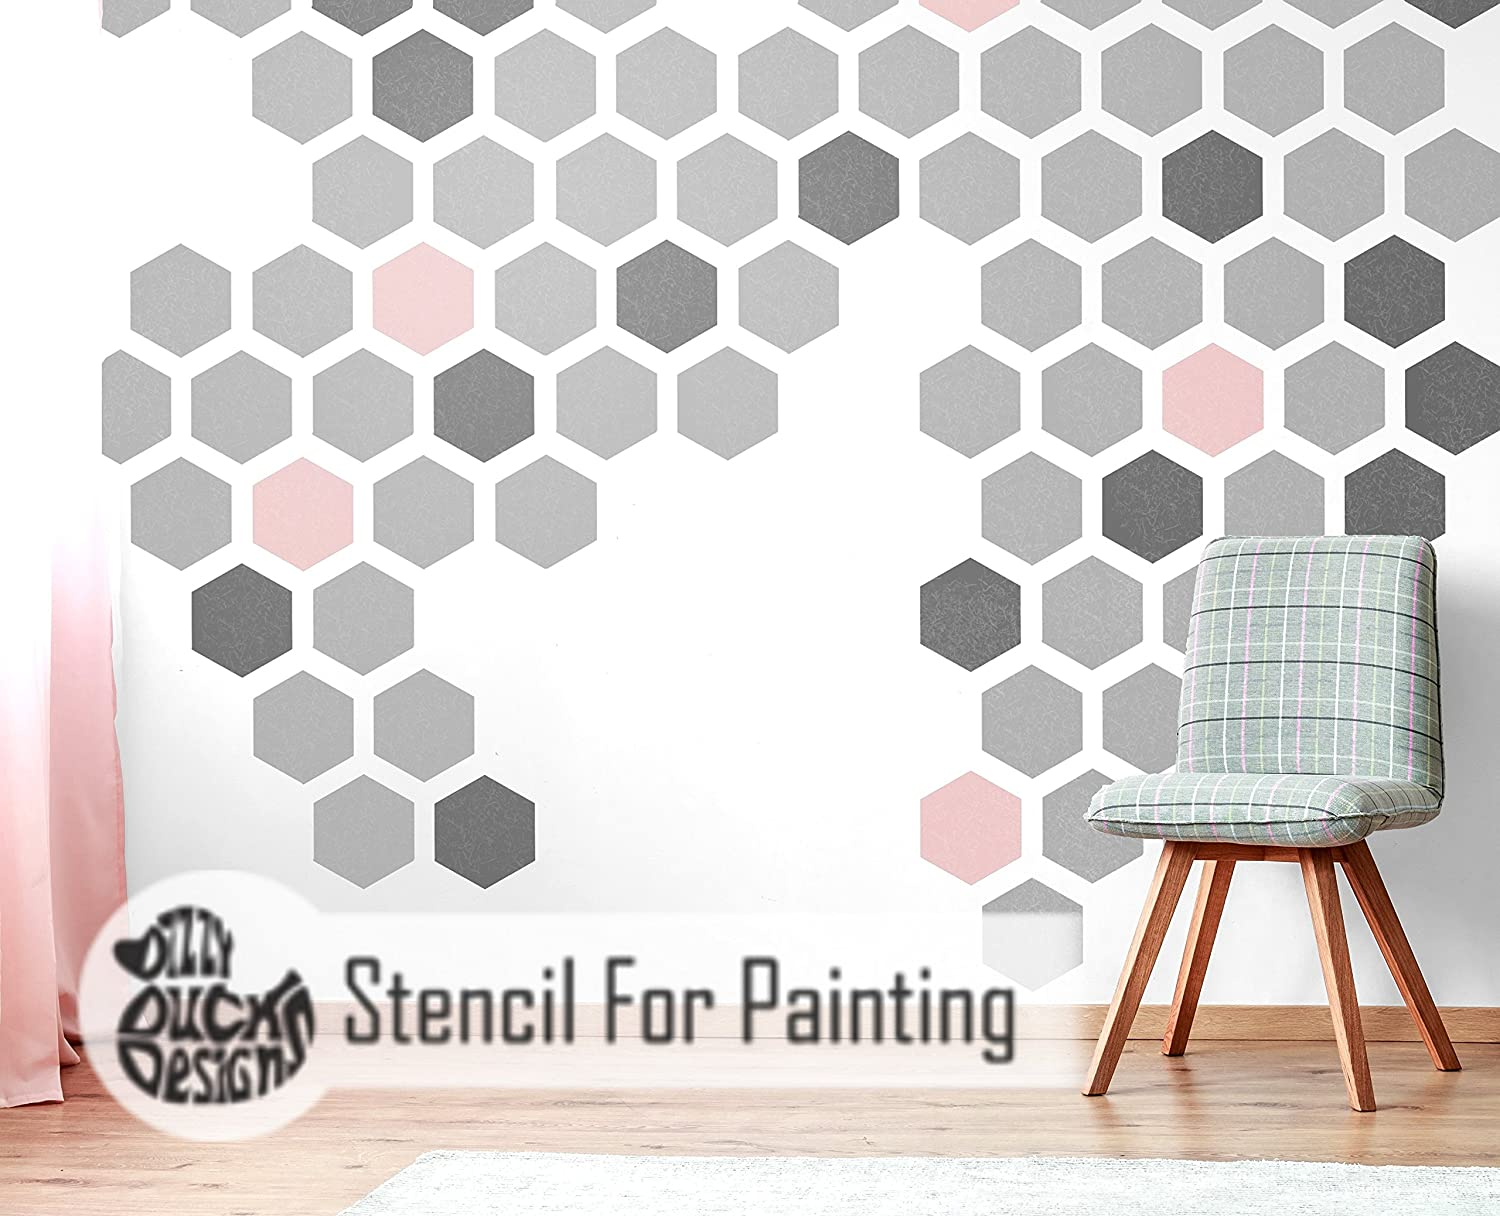 Hexagon Furniture Wall Floor Stencil For Painting Wall Small